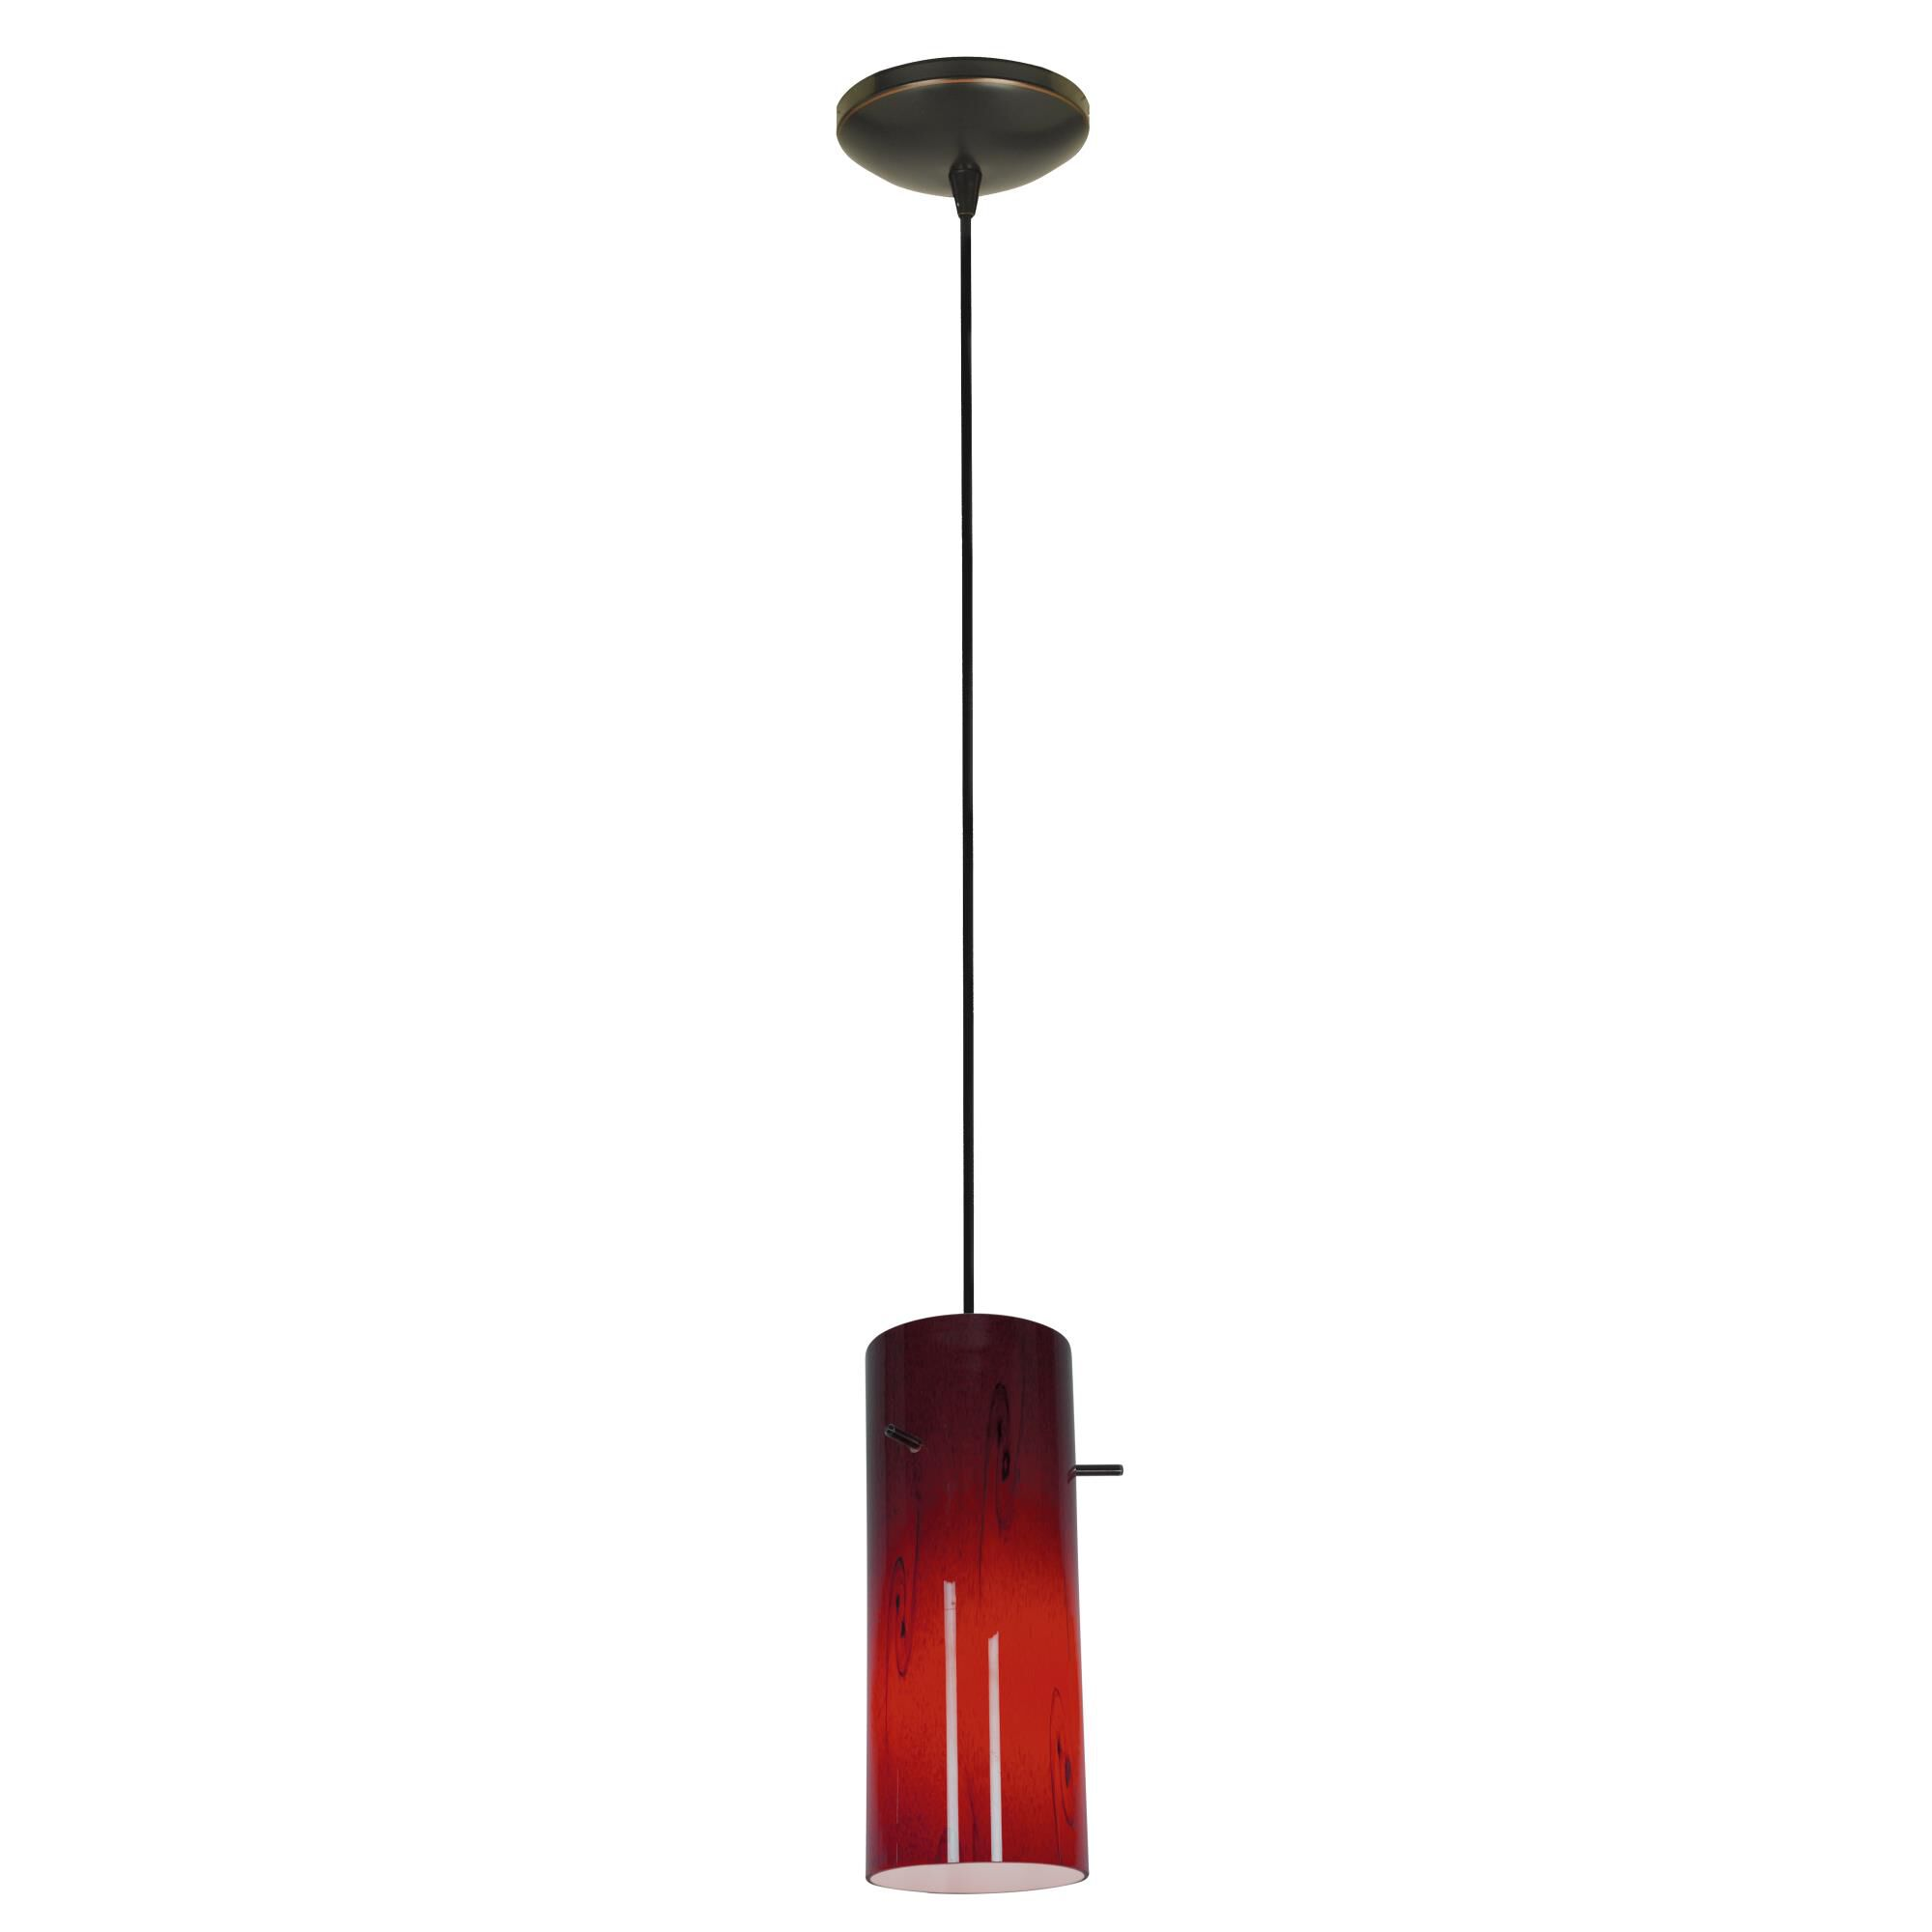 Access Lighting Cylinder LED Mini Pendant Cylinder 28030 3C ORBRED Modern Contemporary